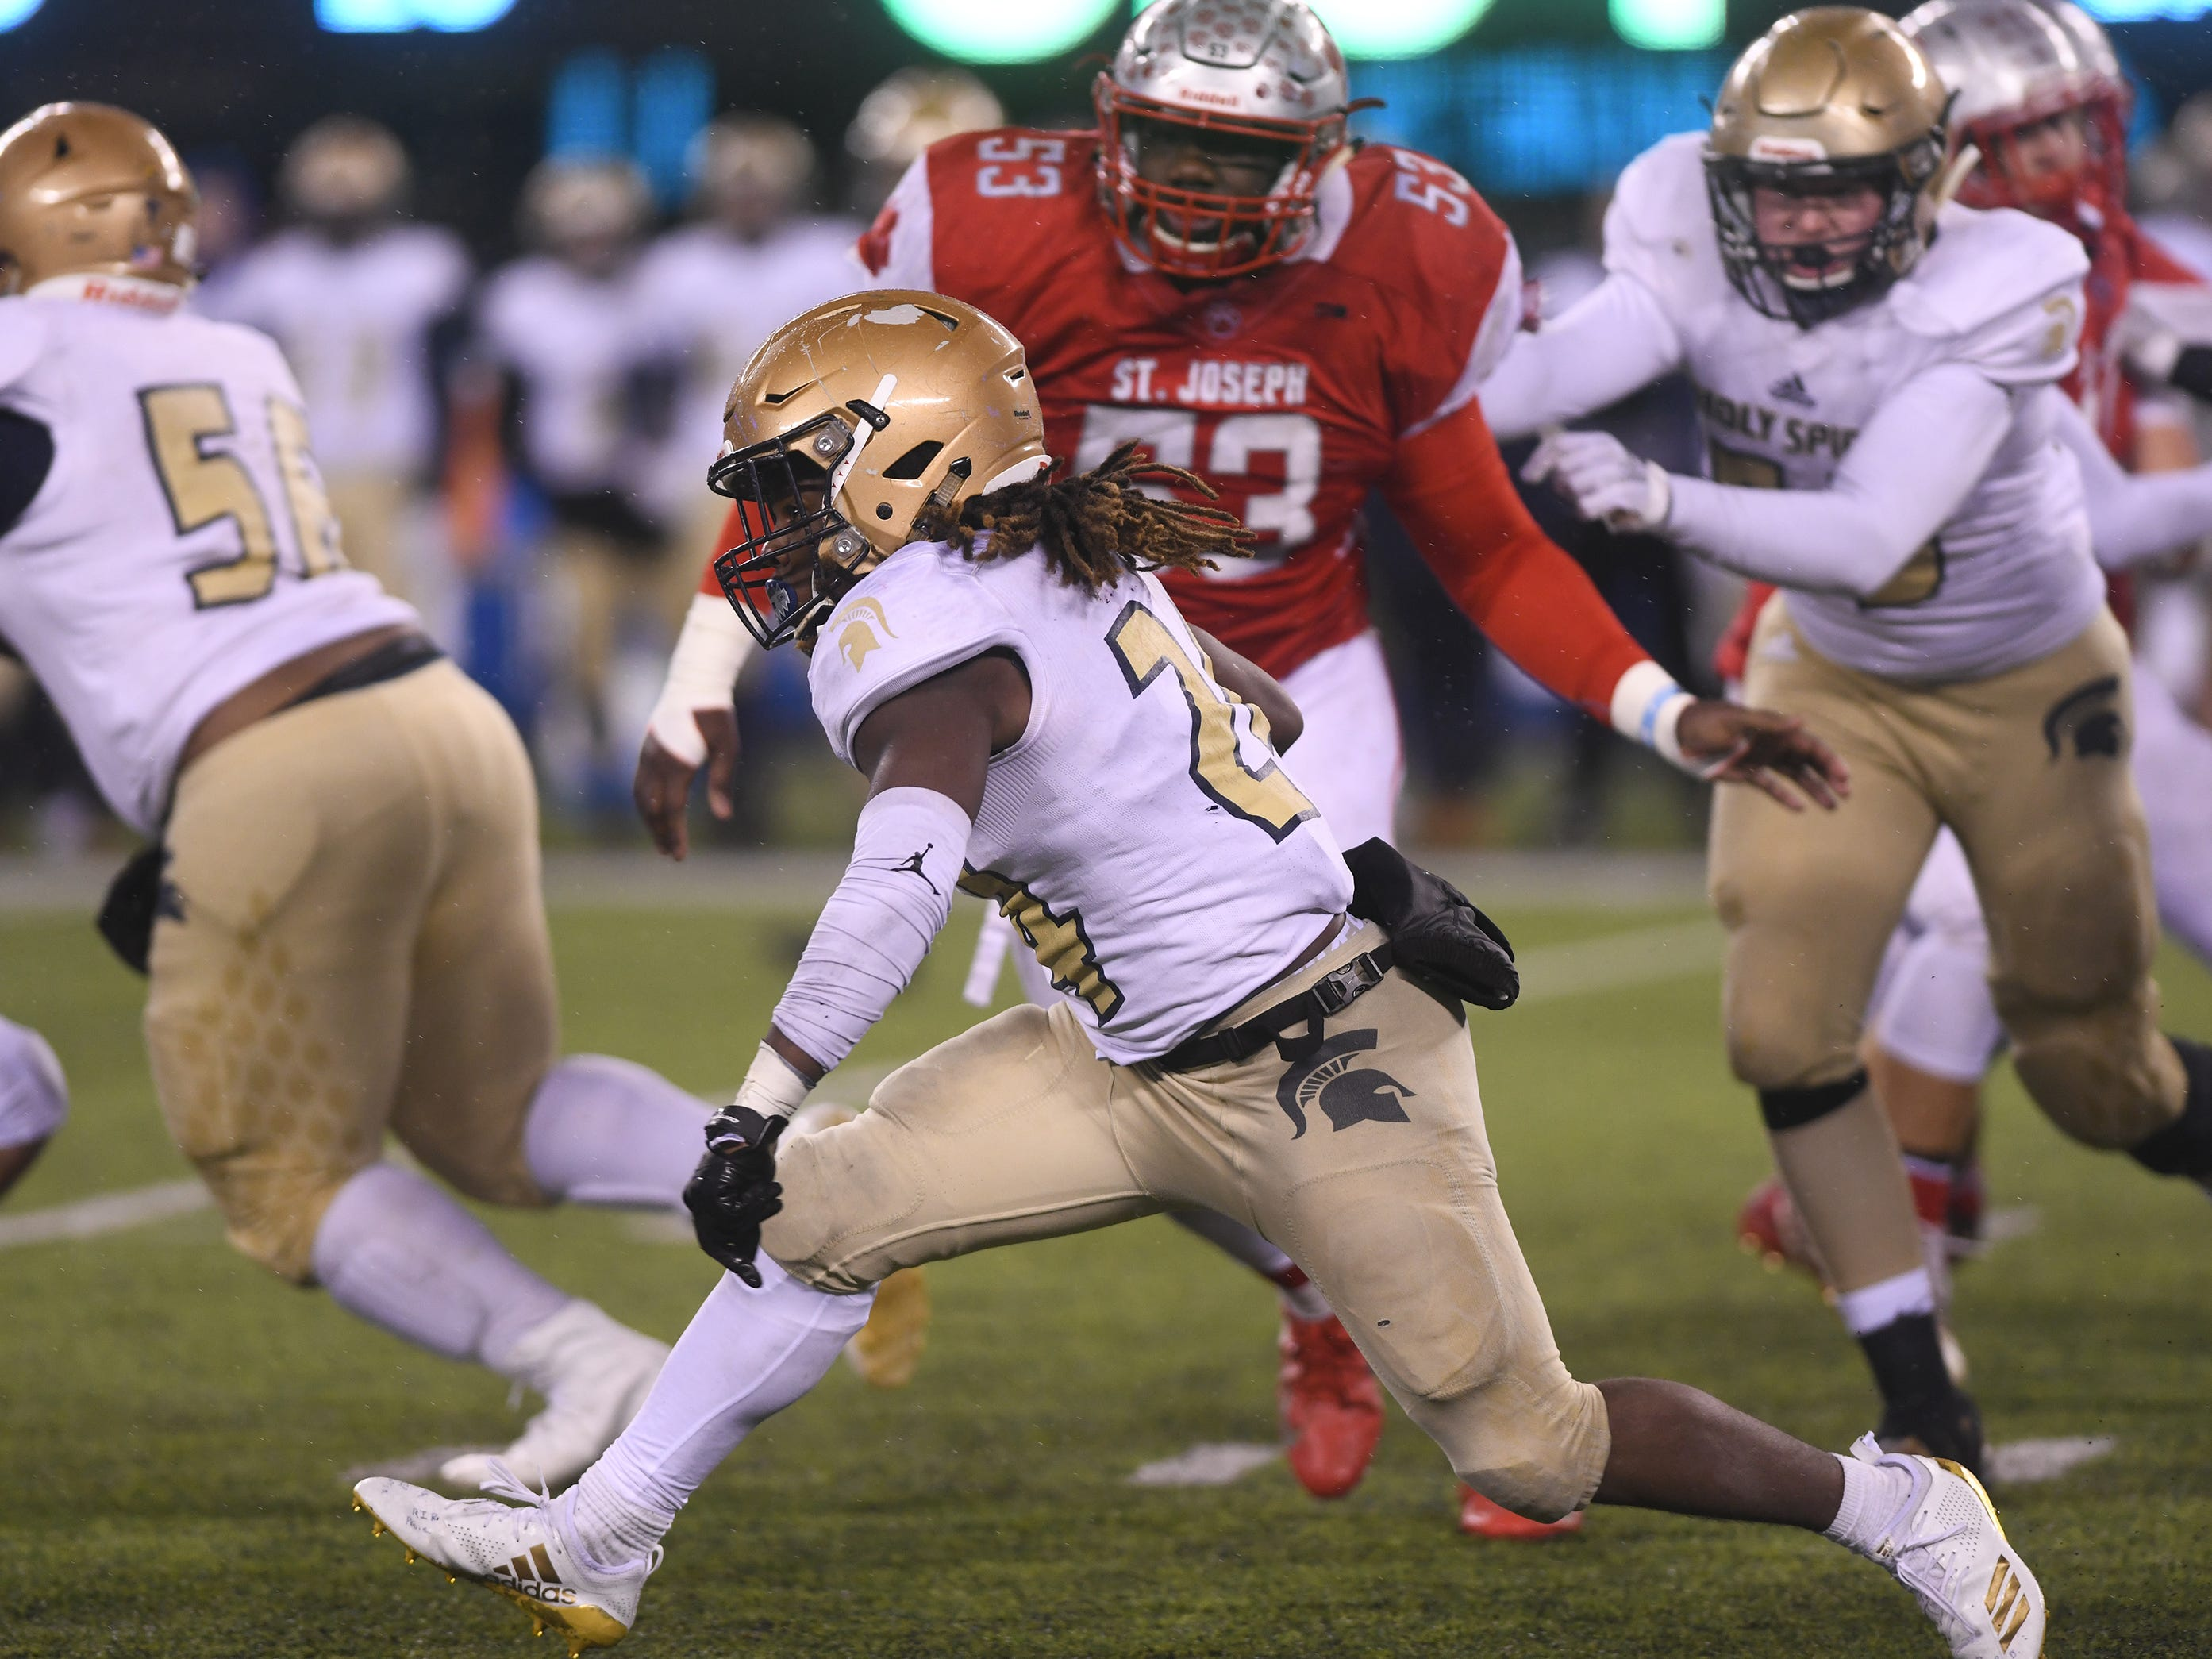 Holy Spirit's E'lijah Gray runs for a gain against St. Joseph. The Wildcats topped the Spartans, 41-22 at MetLife Stadium on Friday, November 30, 2018.